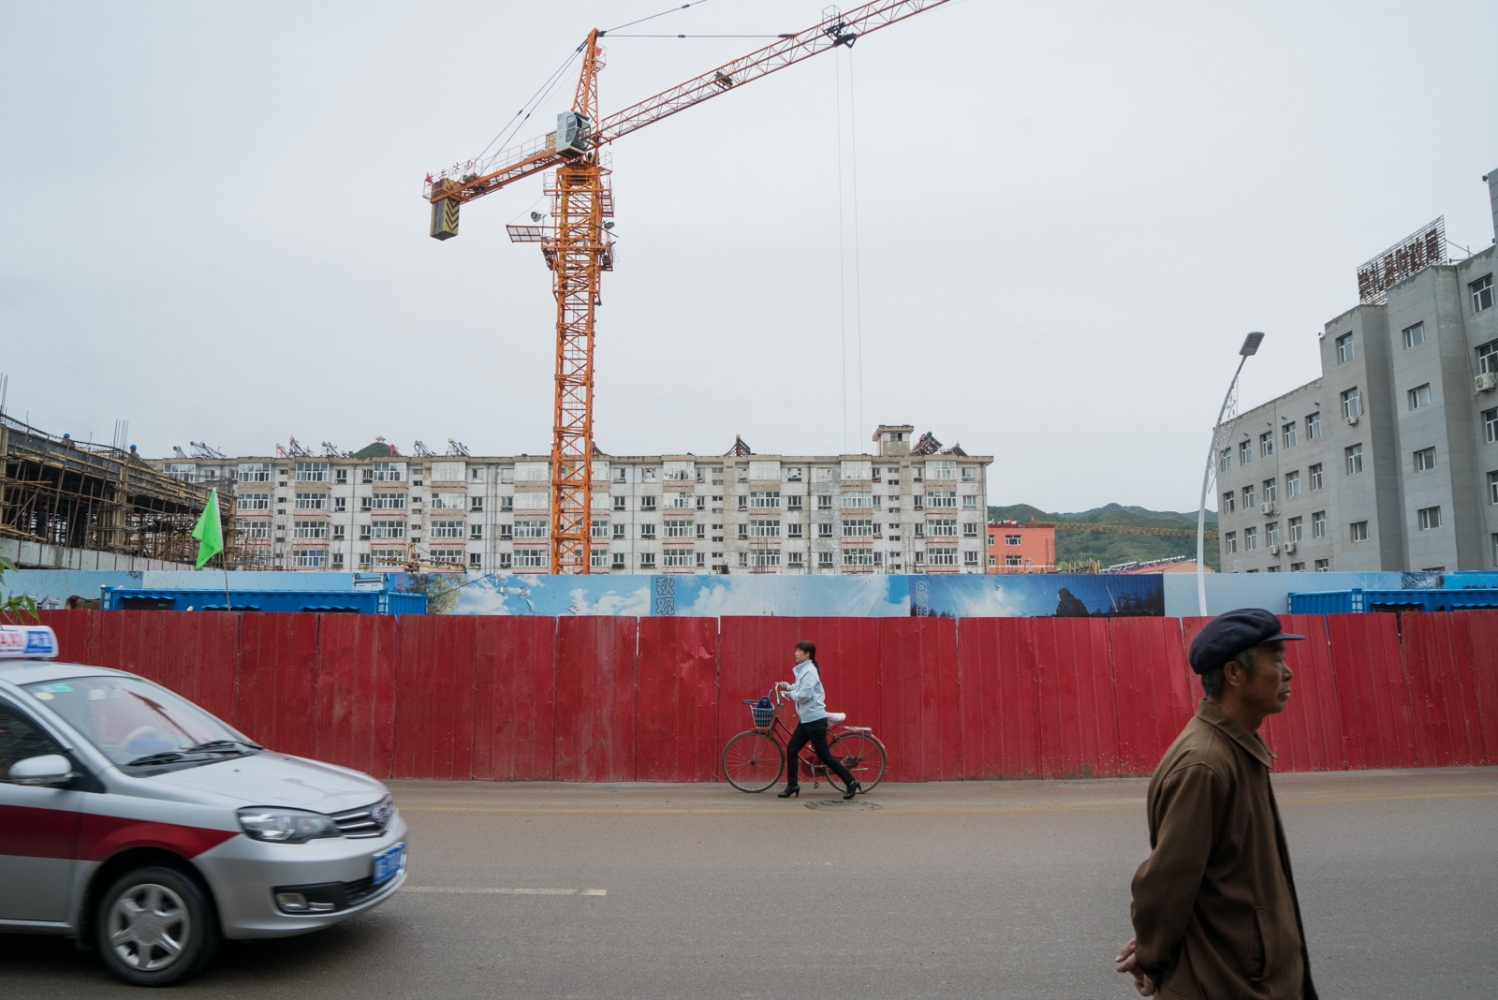 On Changqing Road in Chongli County, constructions are busy. After Beijing and Zhangjiakou won the bid for 2022 Winter Olympics, housing prices in Chongli go up. The price for the apartment development photographed here is about 1,500 U.S dollar/square meter.